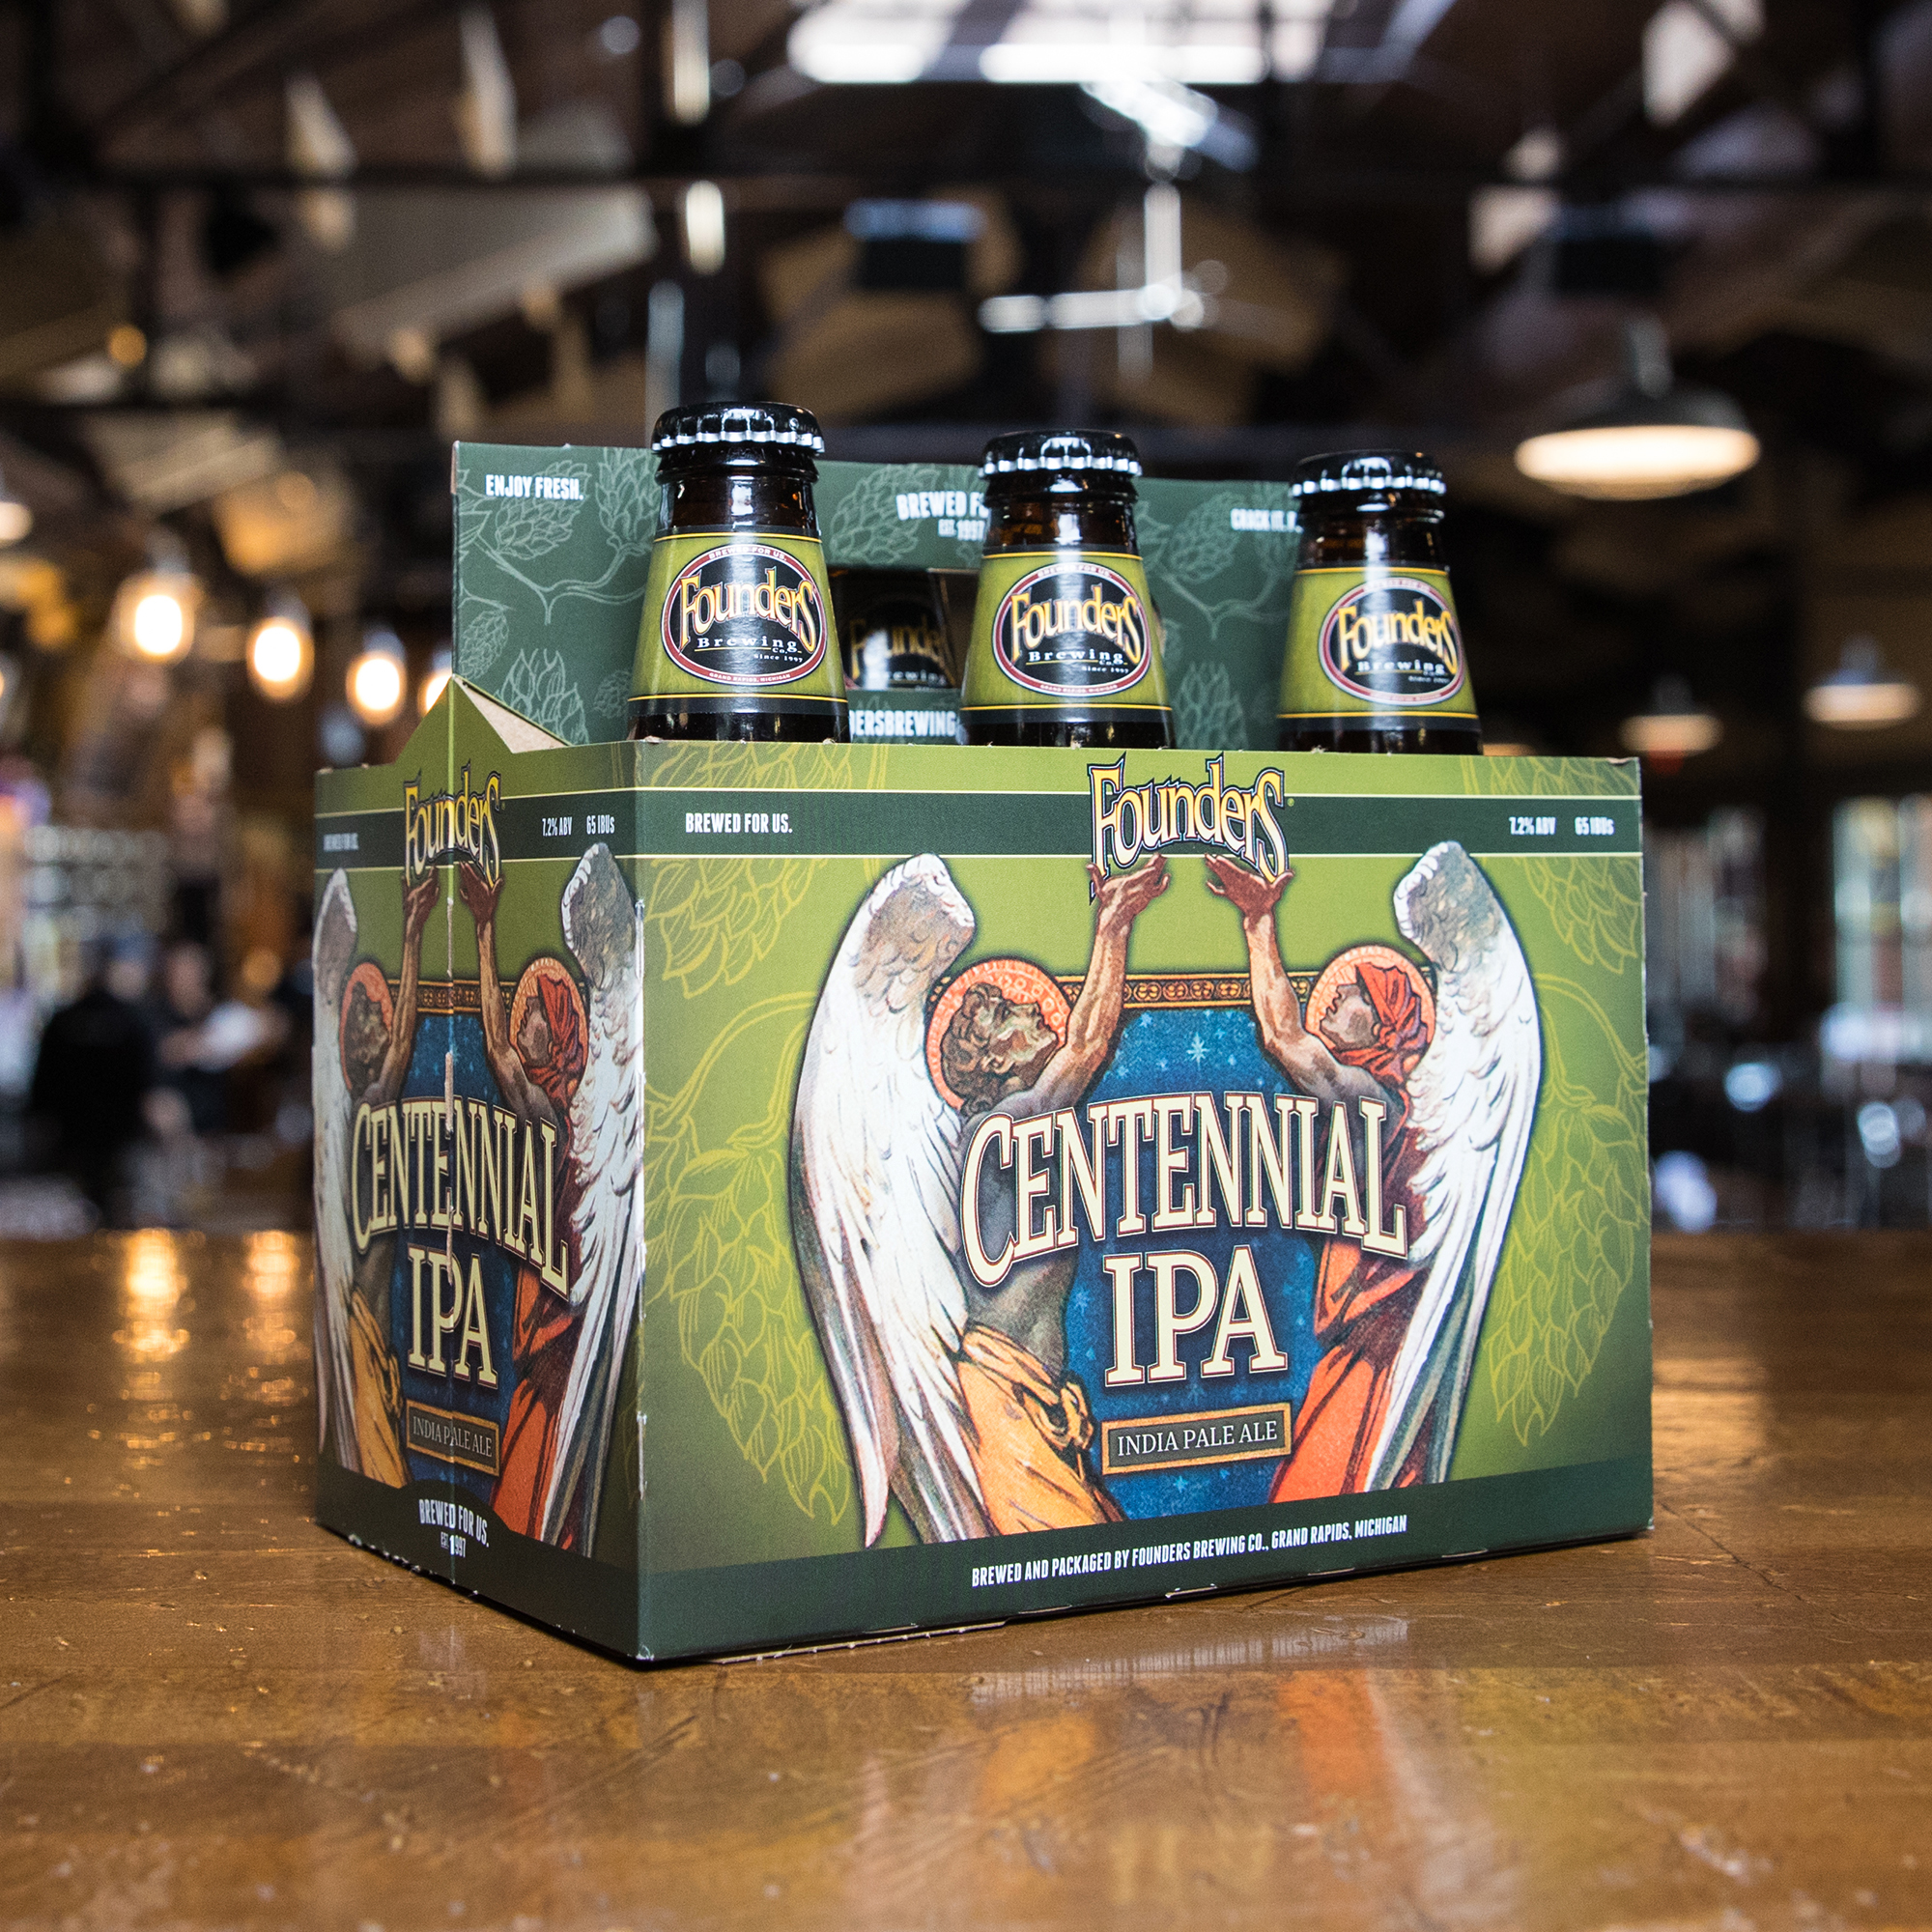 Founder's 6 pack of Centennial IPA